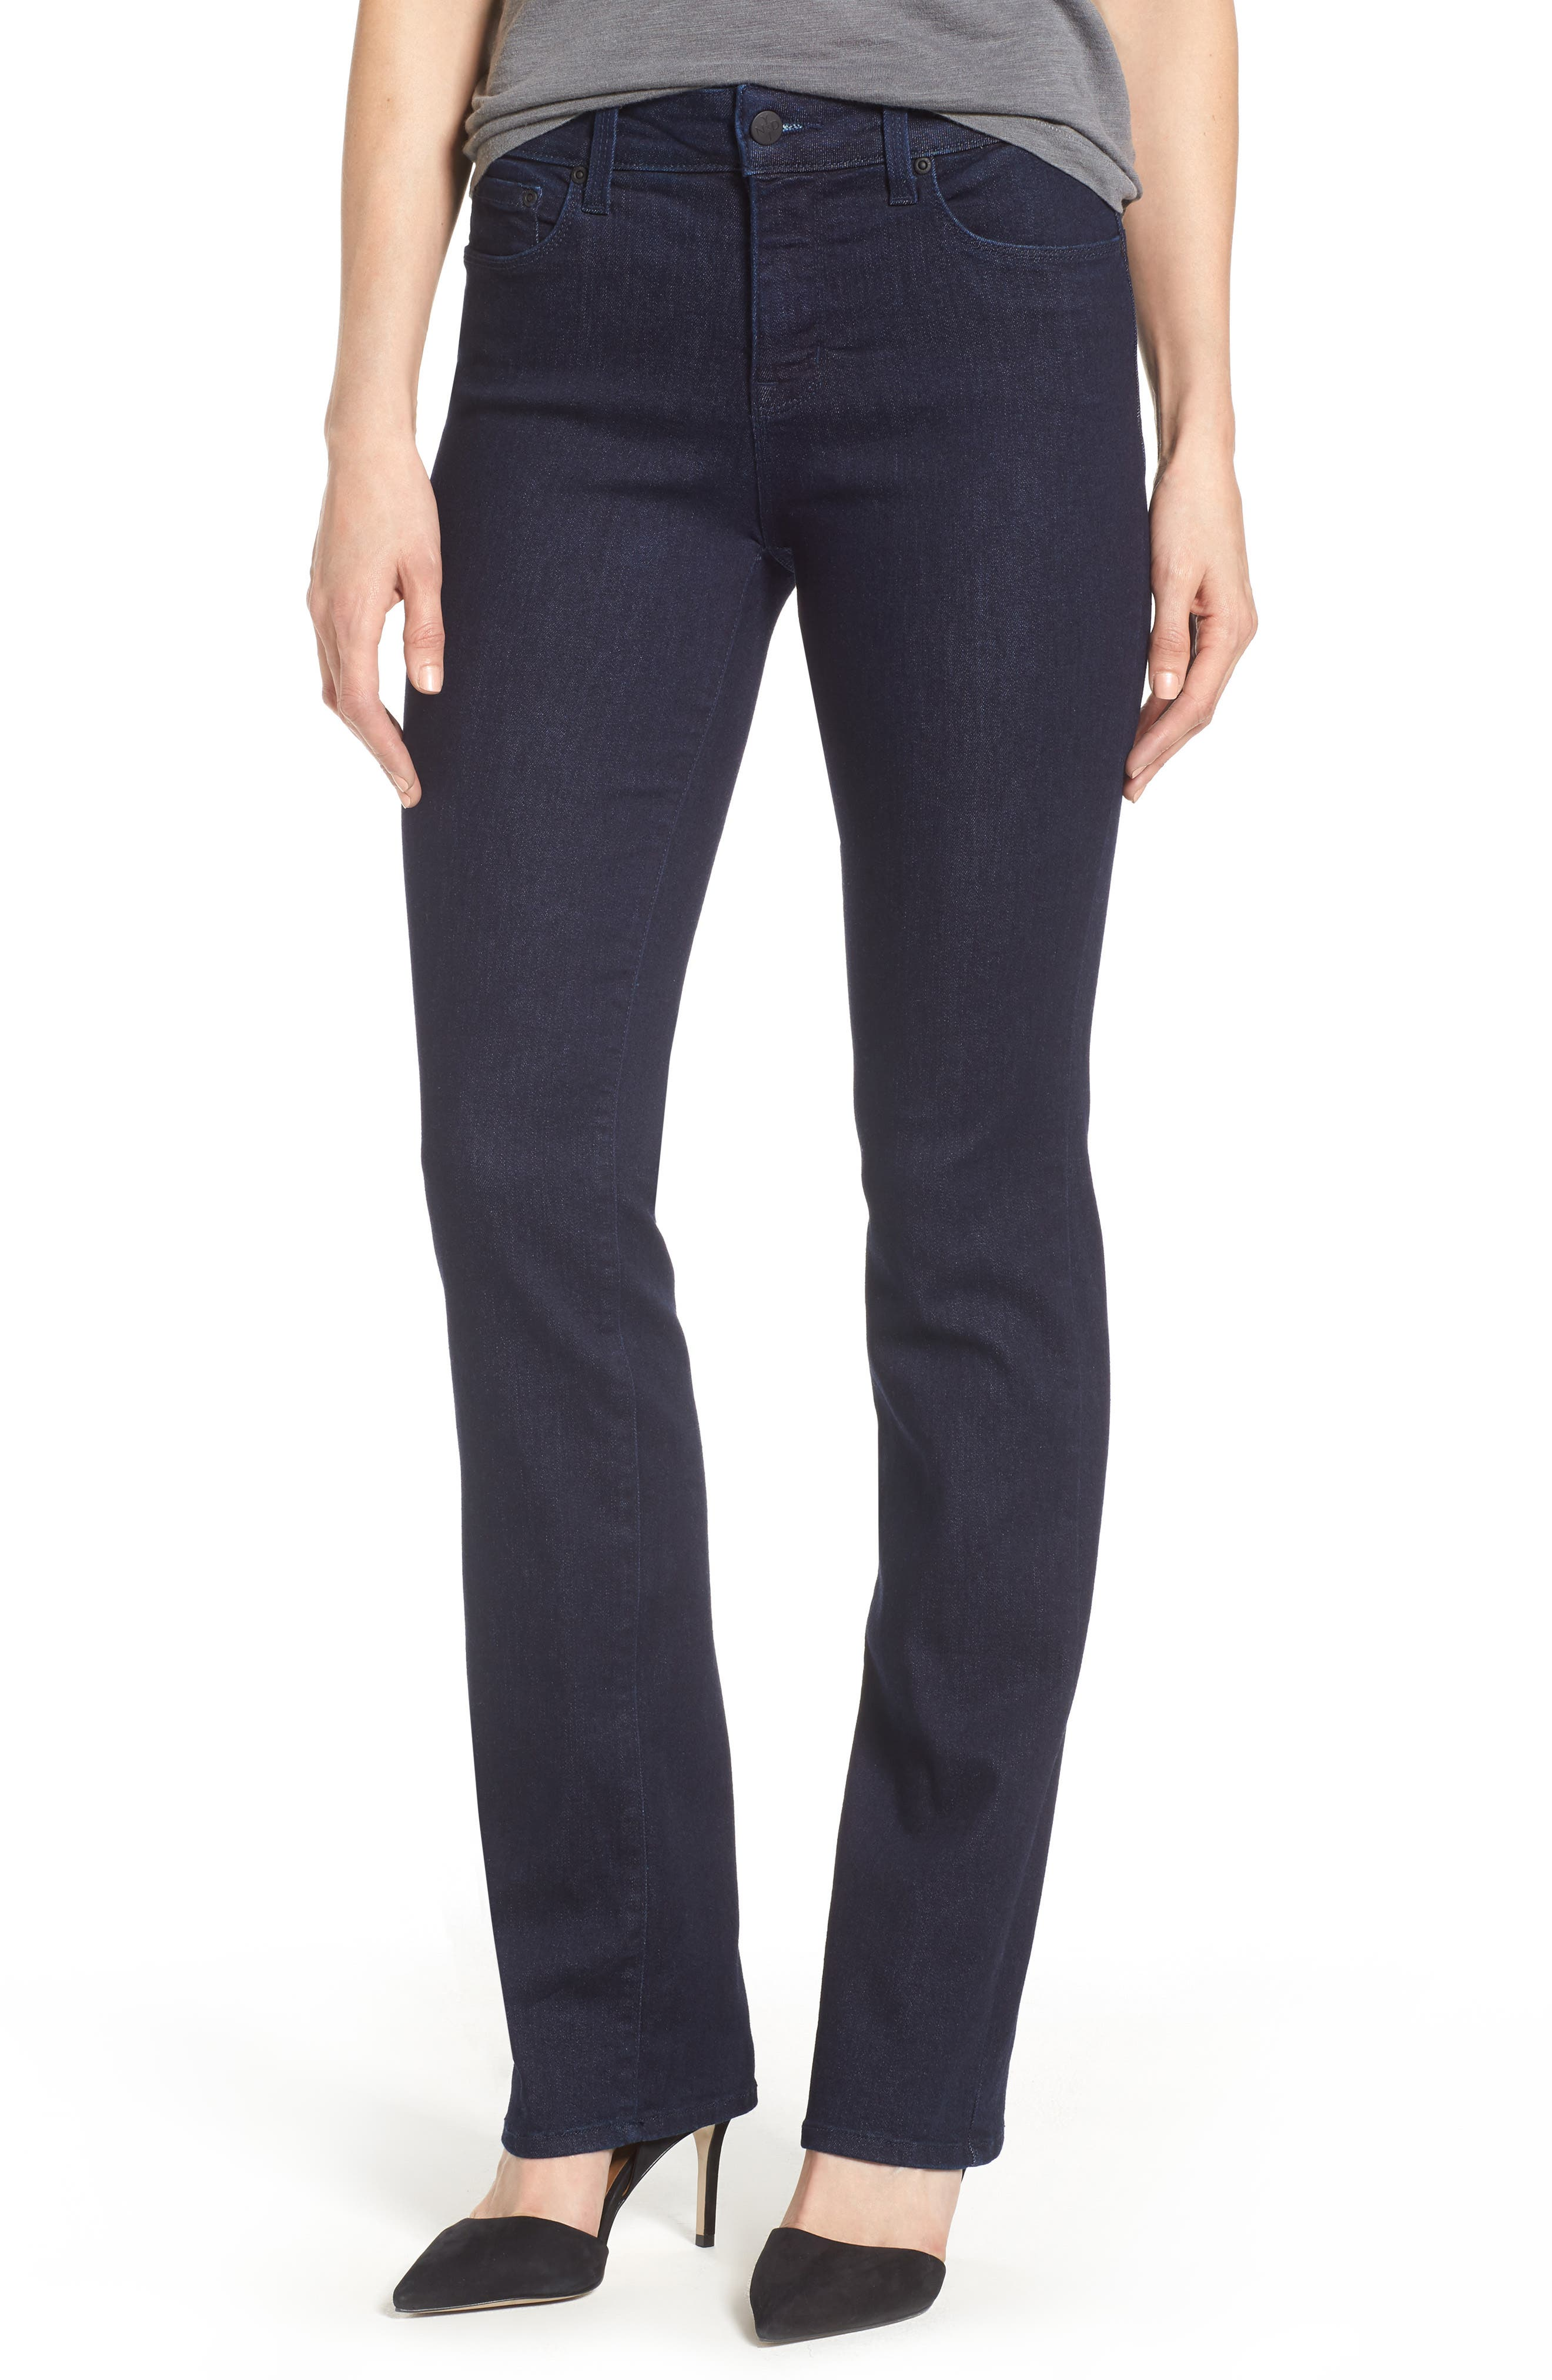 Alternate Image 1 Selected - NYDJ Marilyn Stretch Straight Leg Jeans (Rinse) (Regular & Petite)